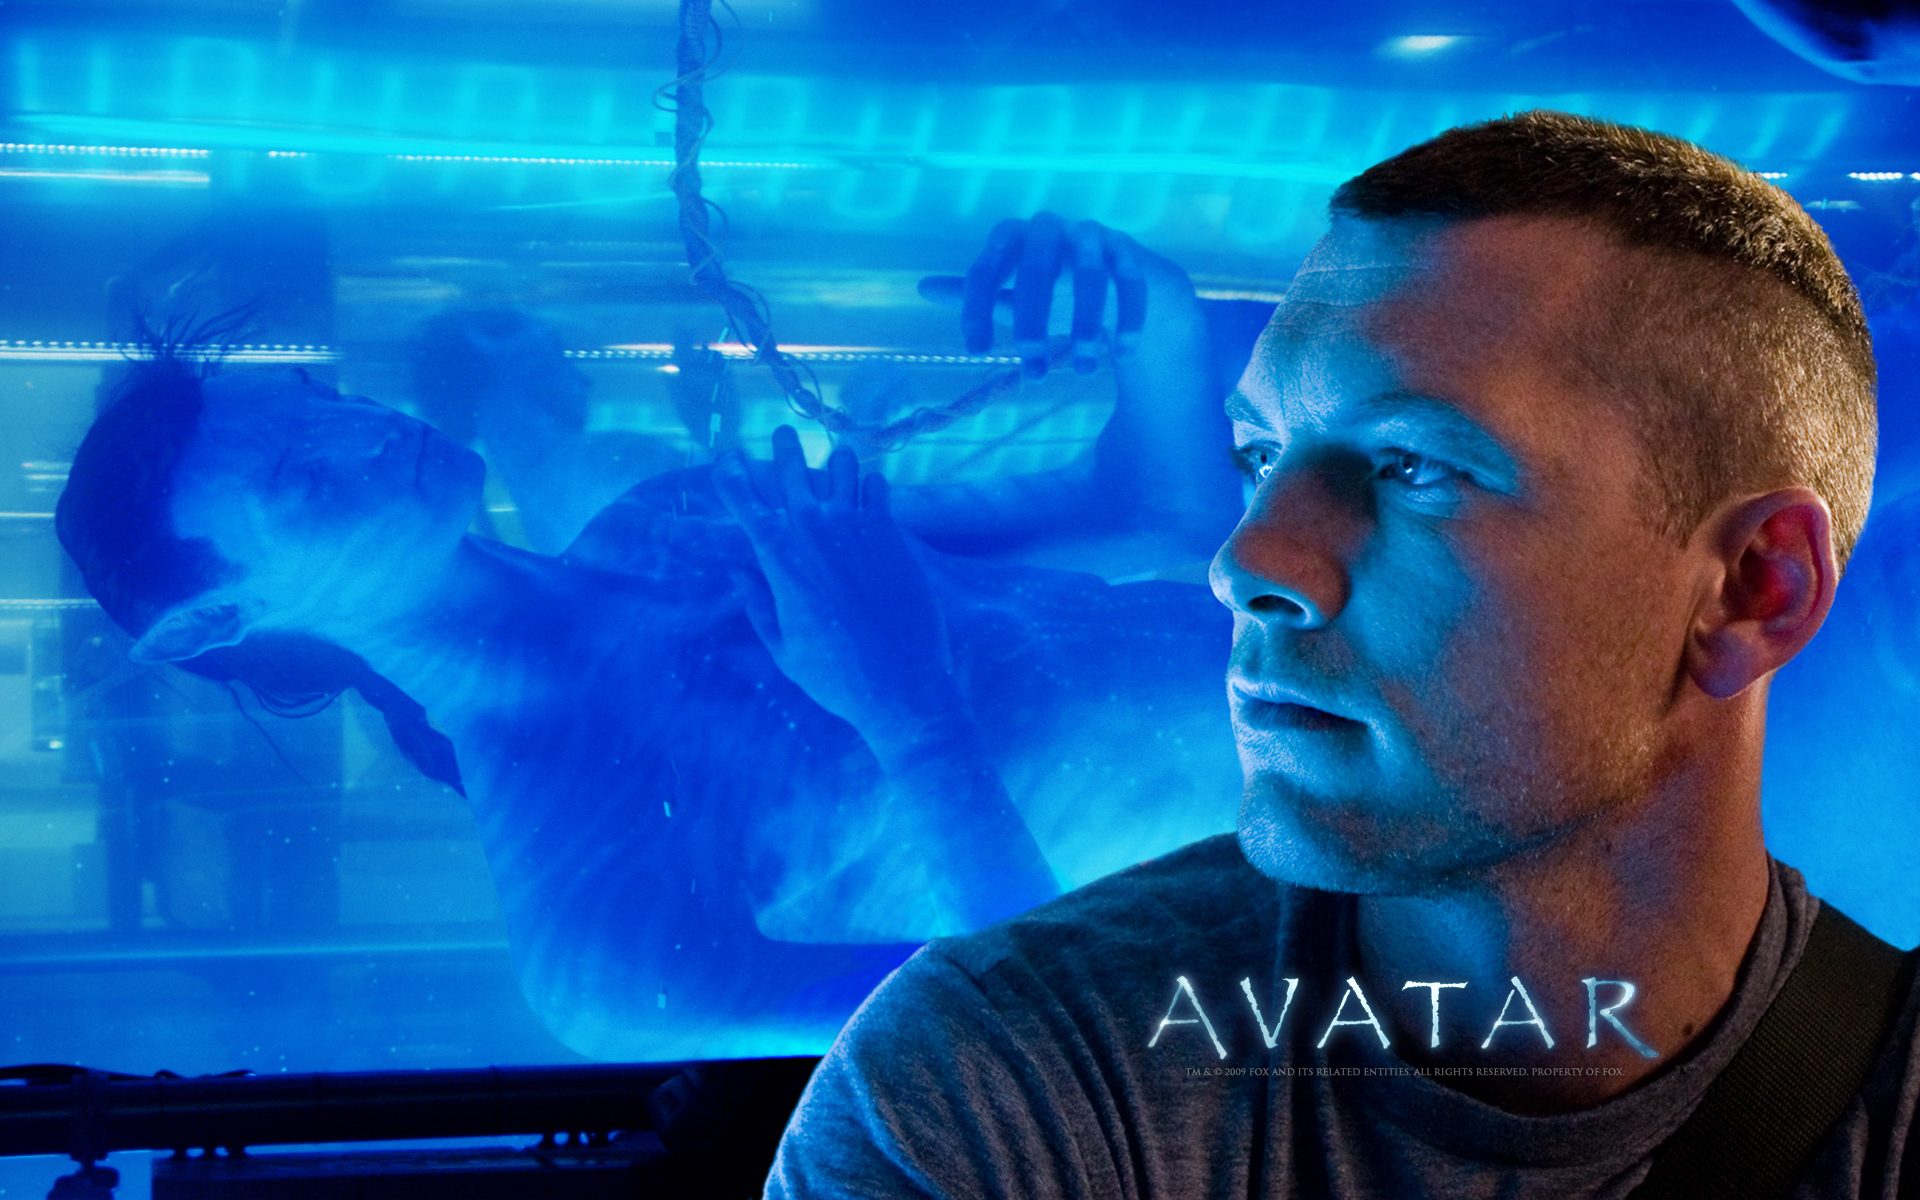 Avatar: Amazing HD Wallpapers Of The 3D Epic Movie Avatar